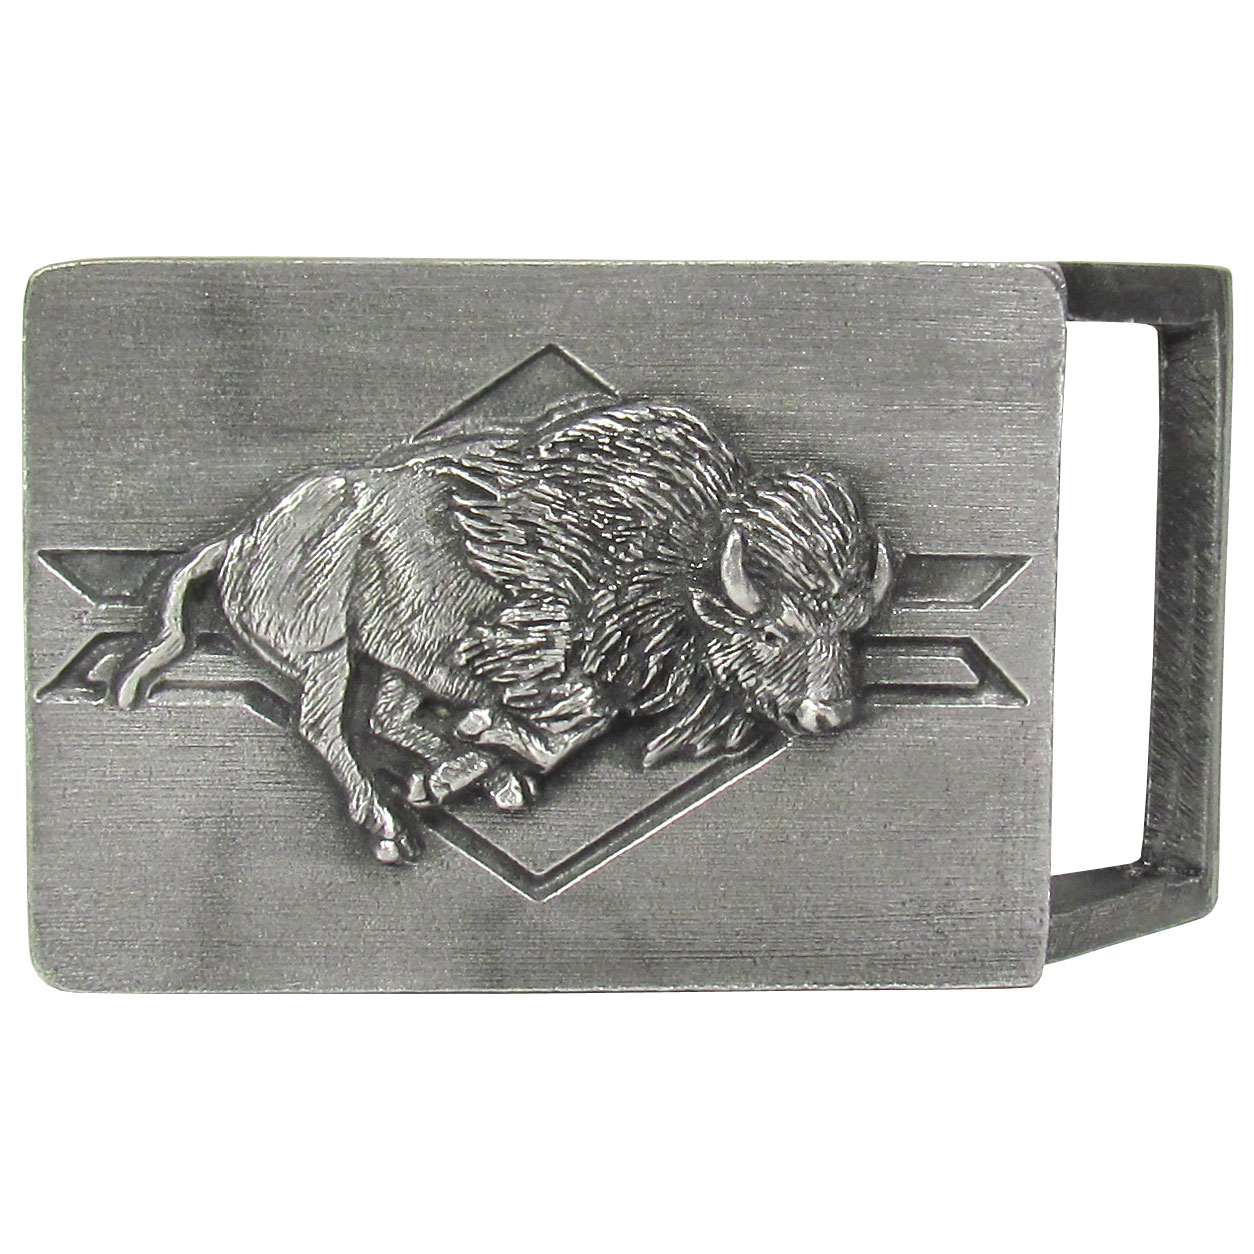 Buffalo Antiqued Belt Buckle - Finely sculpted and intricately designed belt buckle. Our unique designs often become collector's items.